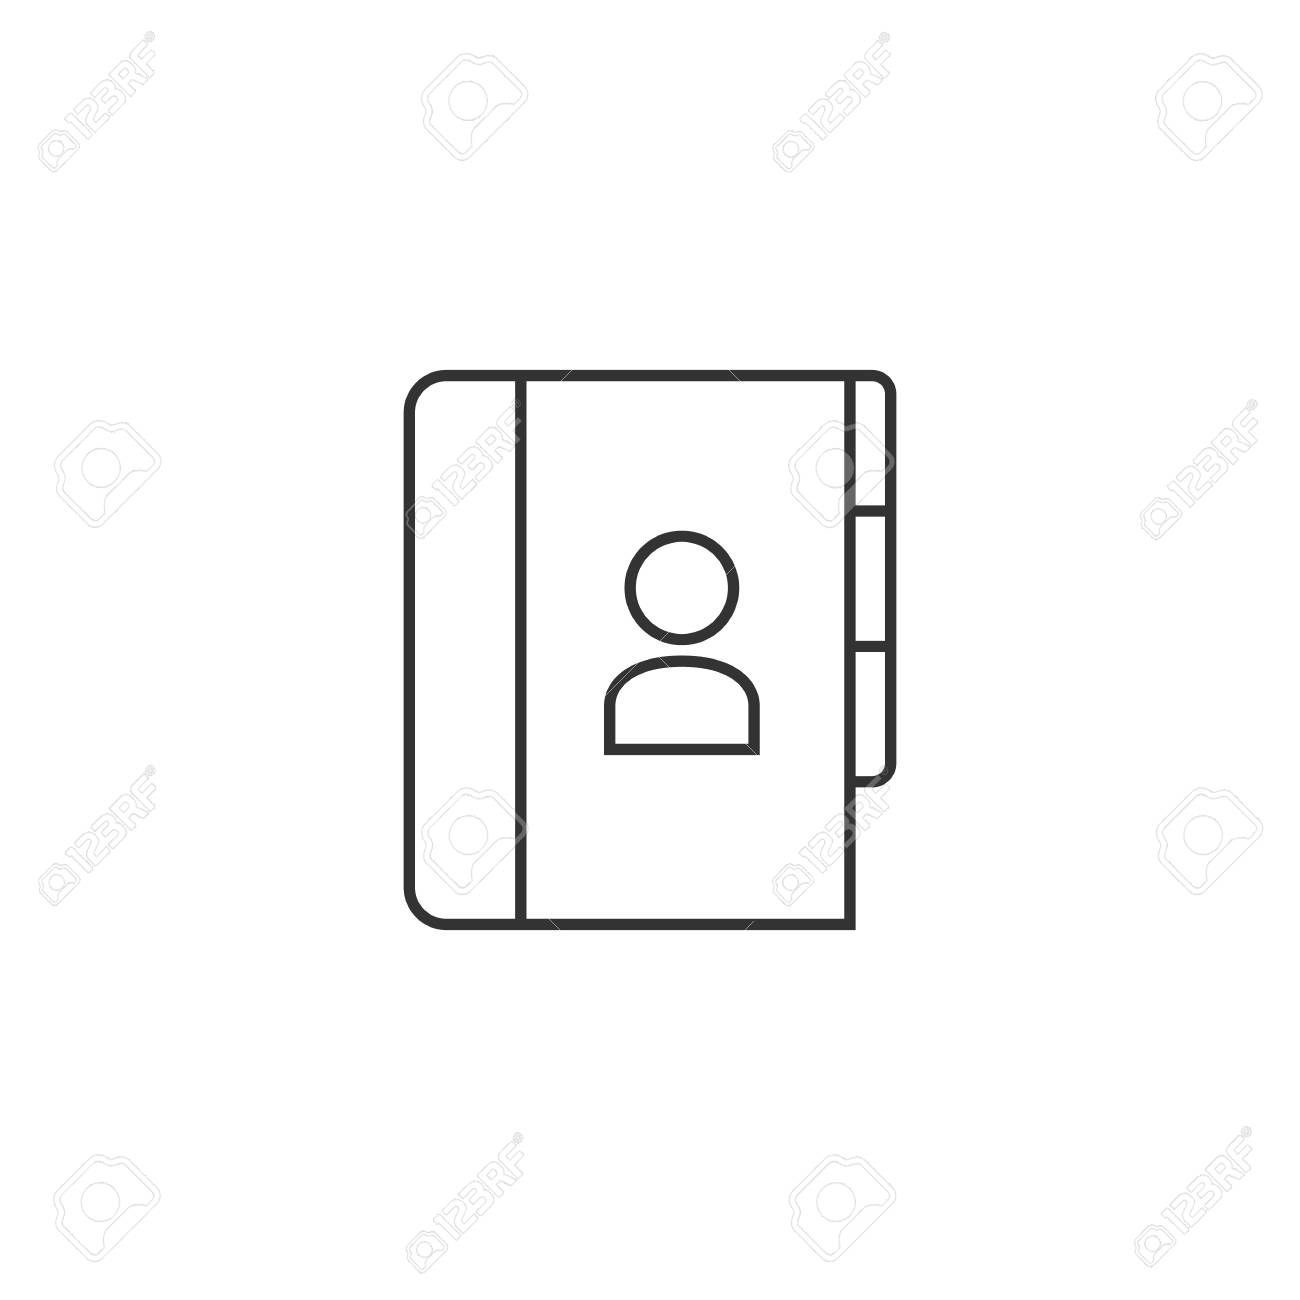 address book icon in thin outline style contac phone list customer